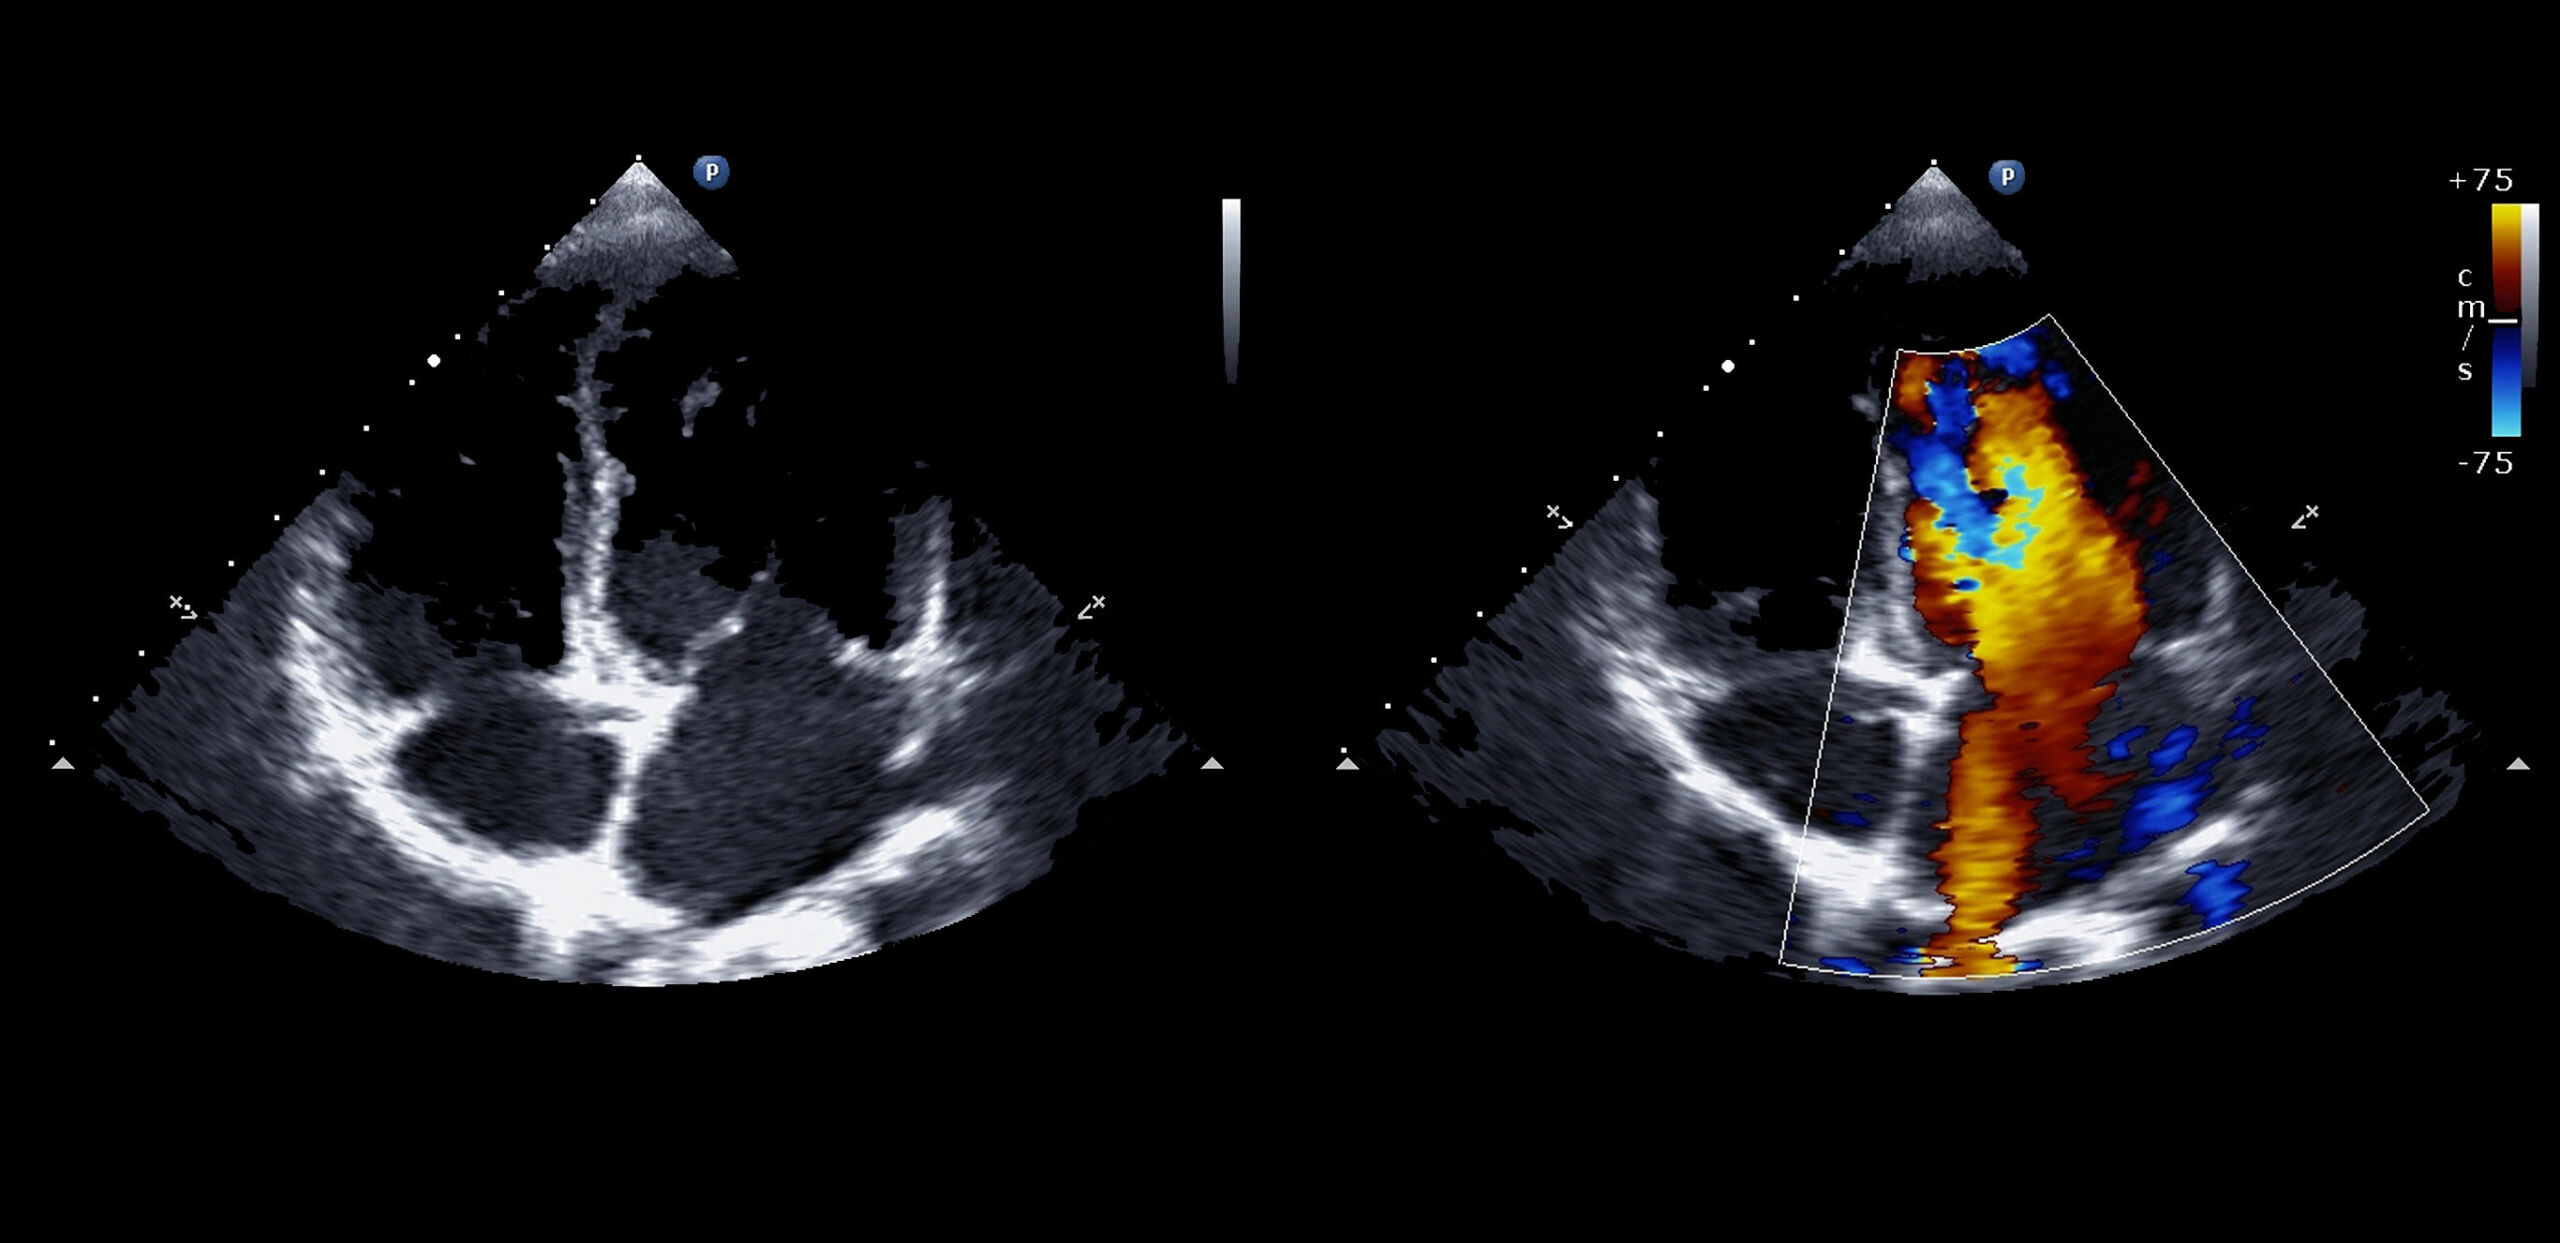 Image from echocardiography scan at Cooley Dickinson Hospital, 30 Locust Street, Northampton, MA 01060.